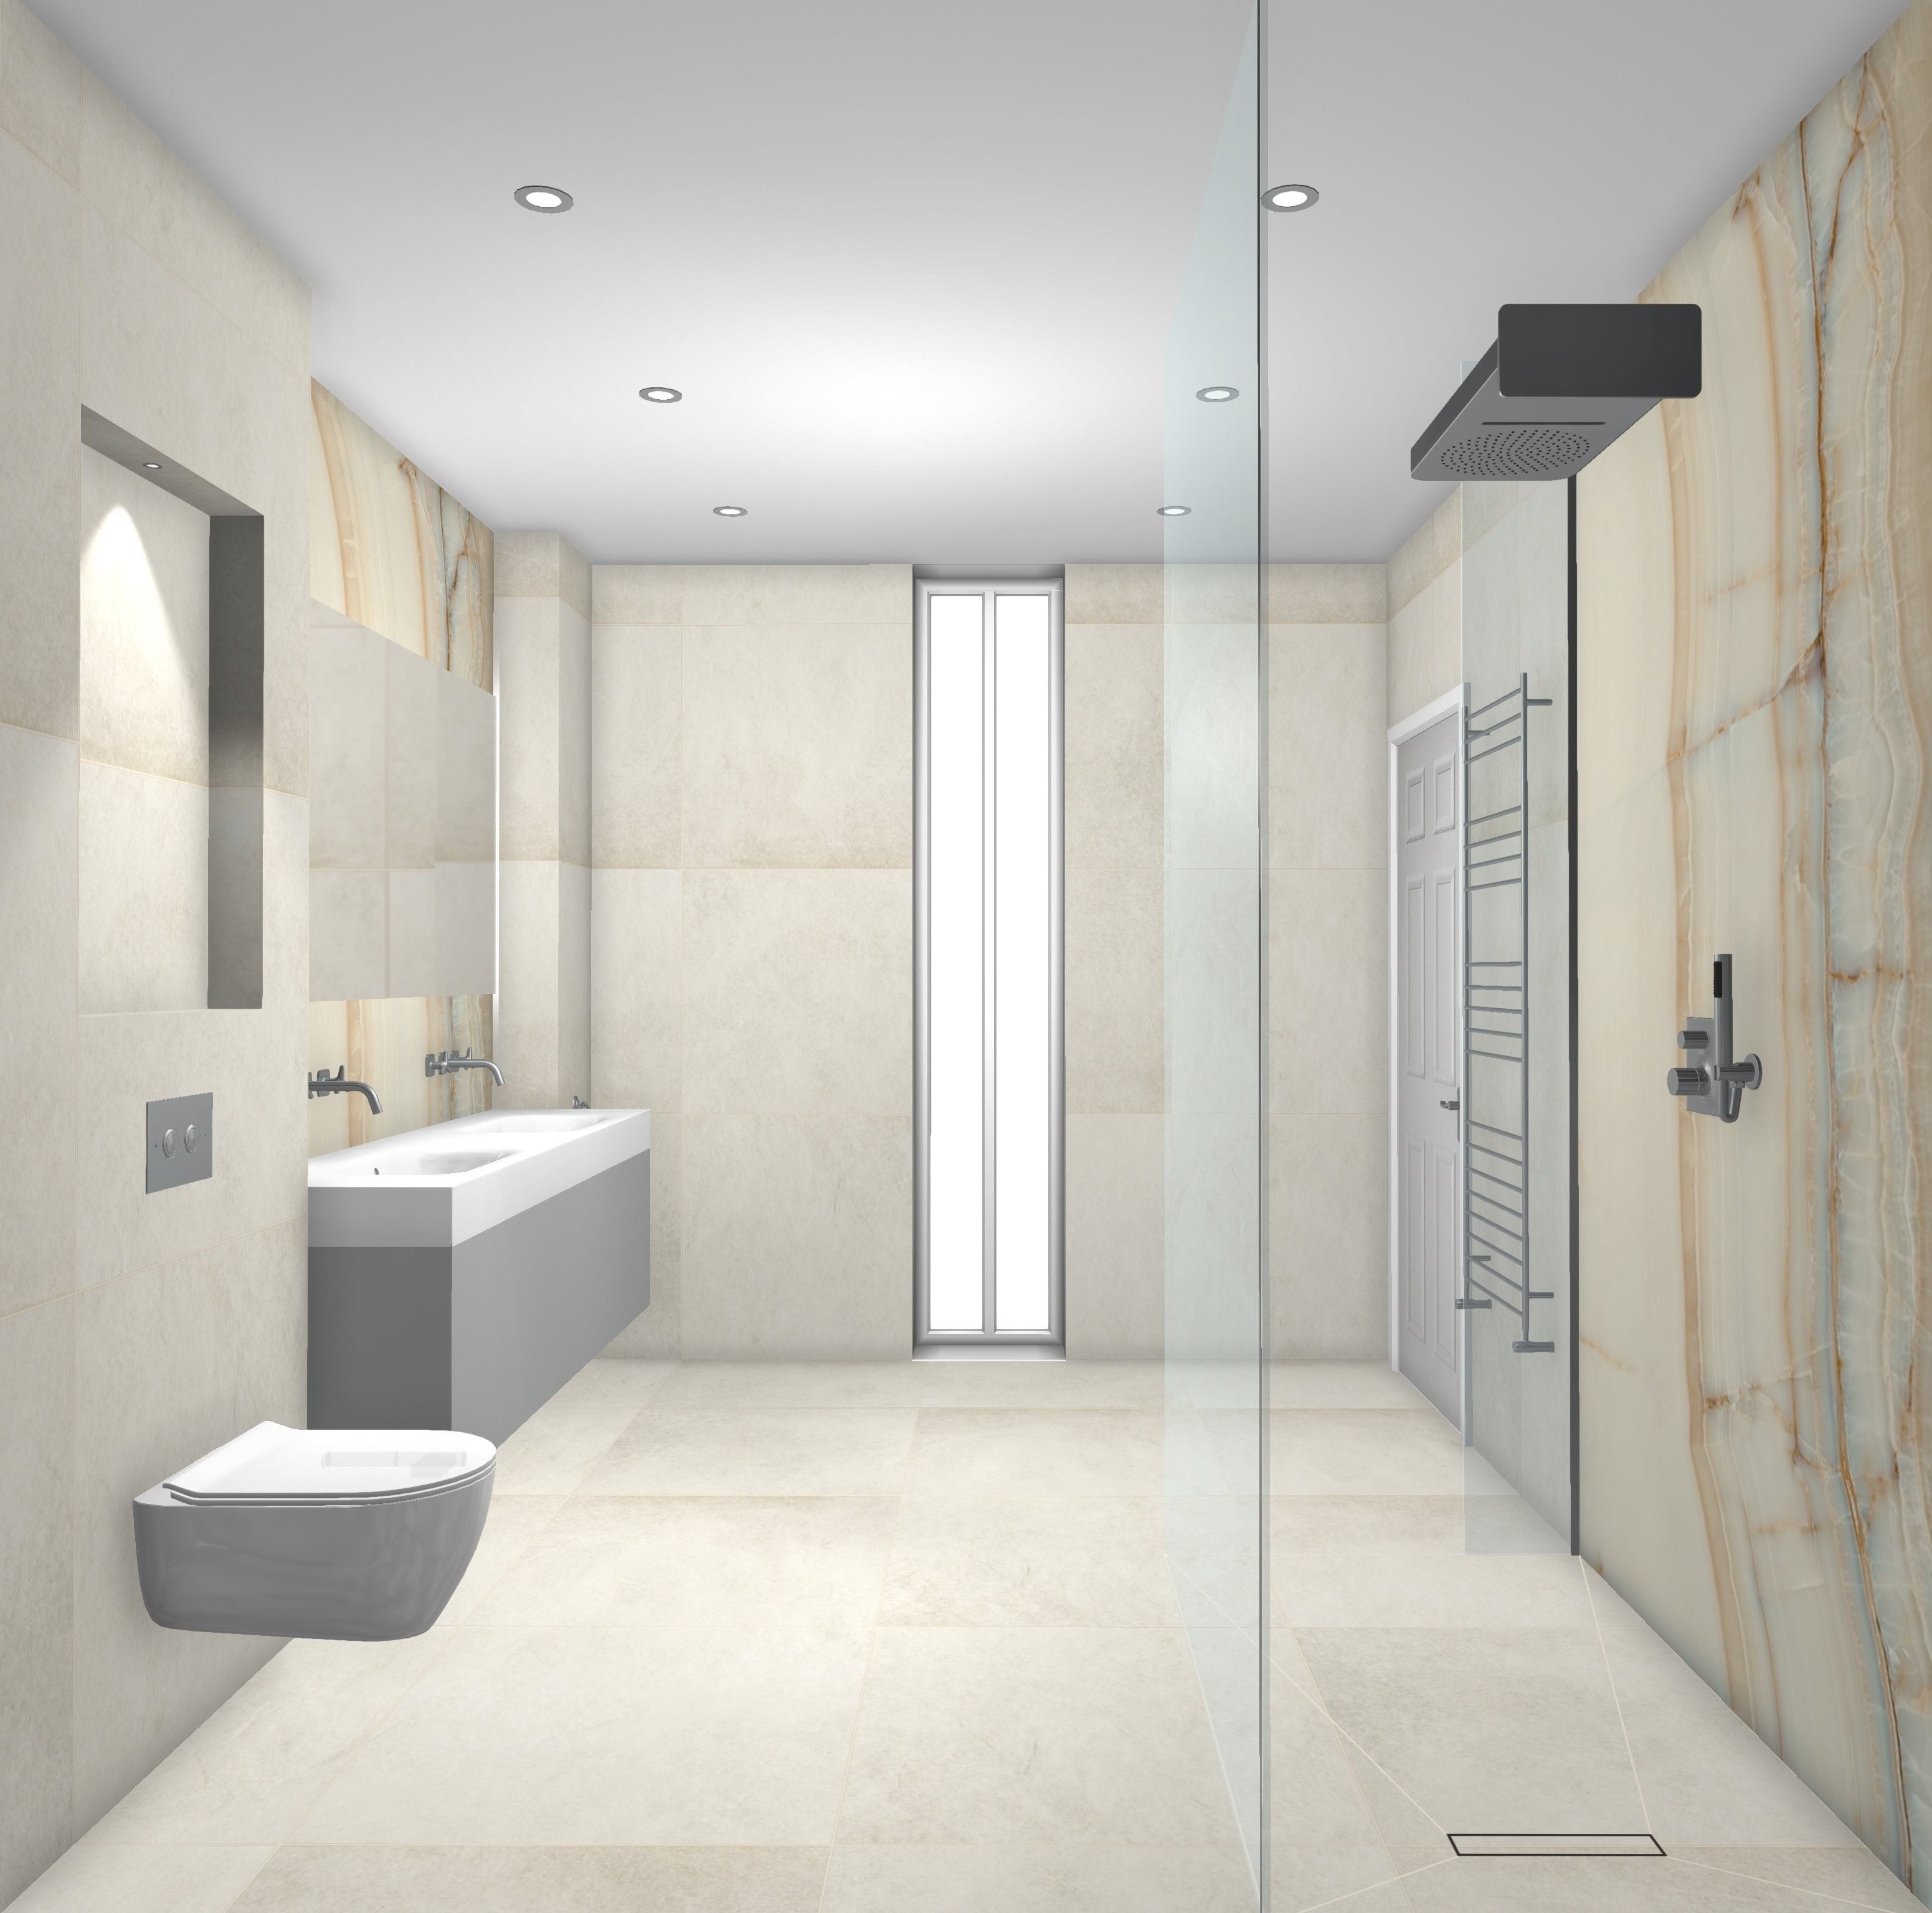 Blog - Design of the Week: Master Ensuite, Chiswick